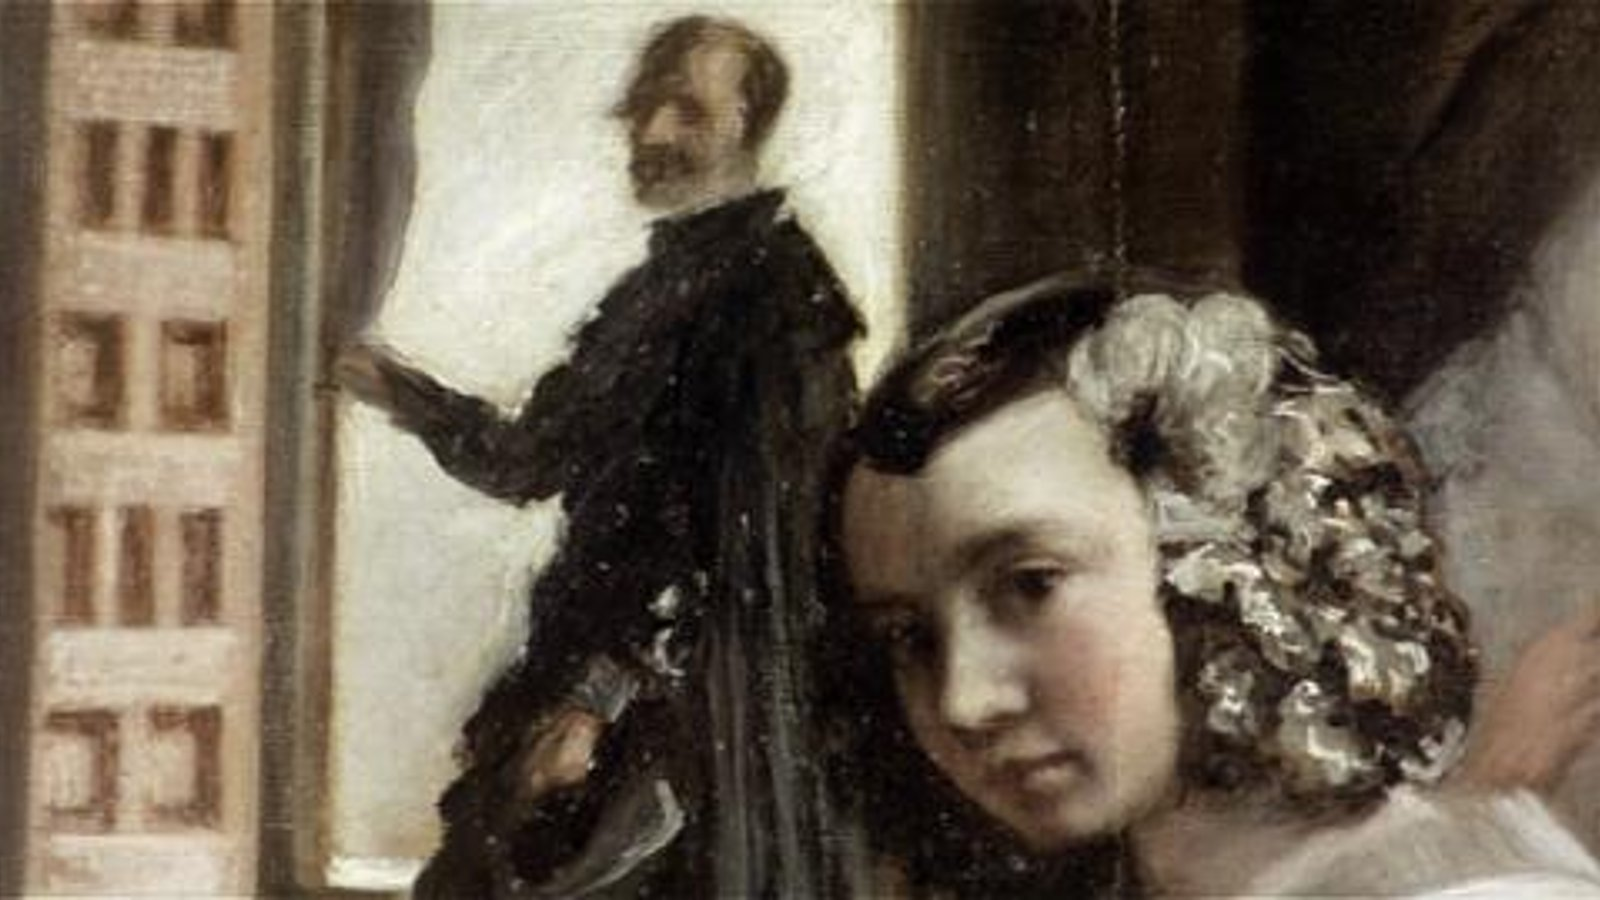 The National Prado Museum - Madrid - 1000 Masterpieces from the Great Museums of the World